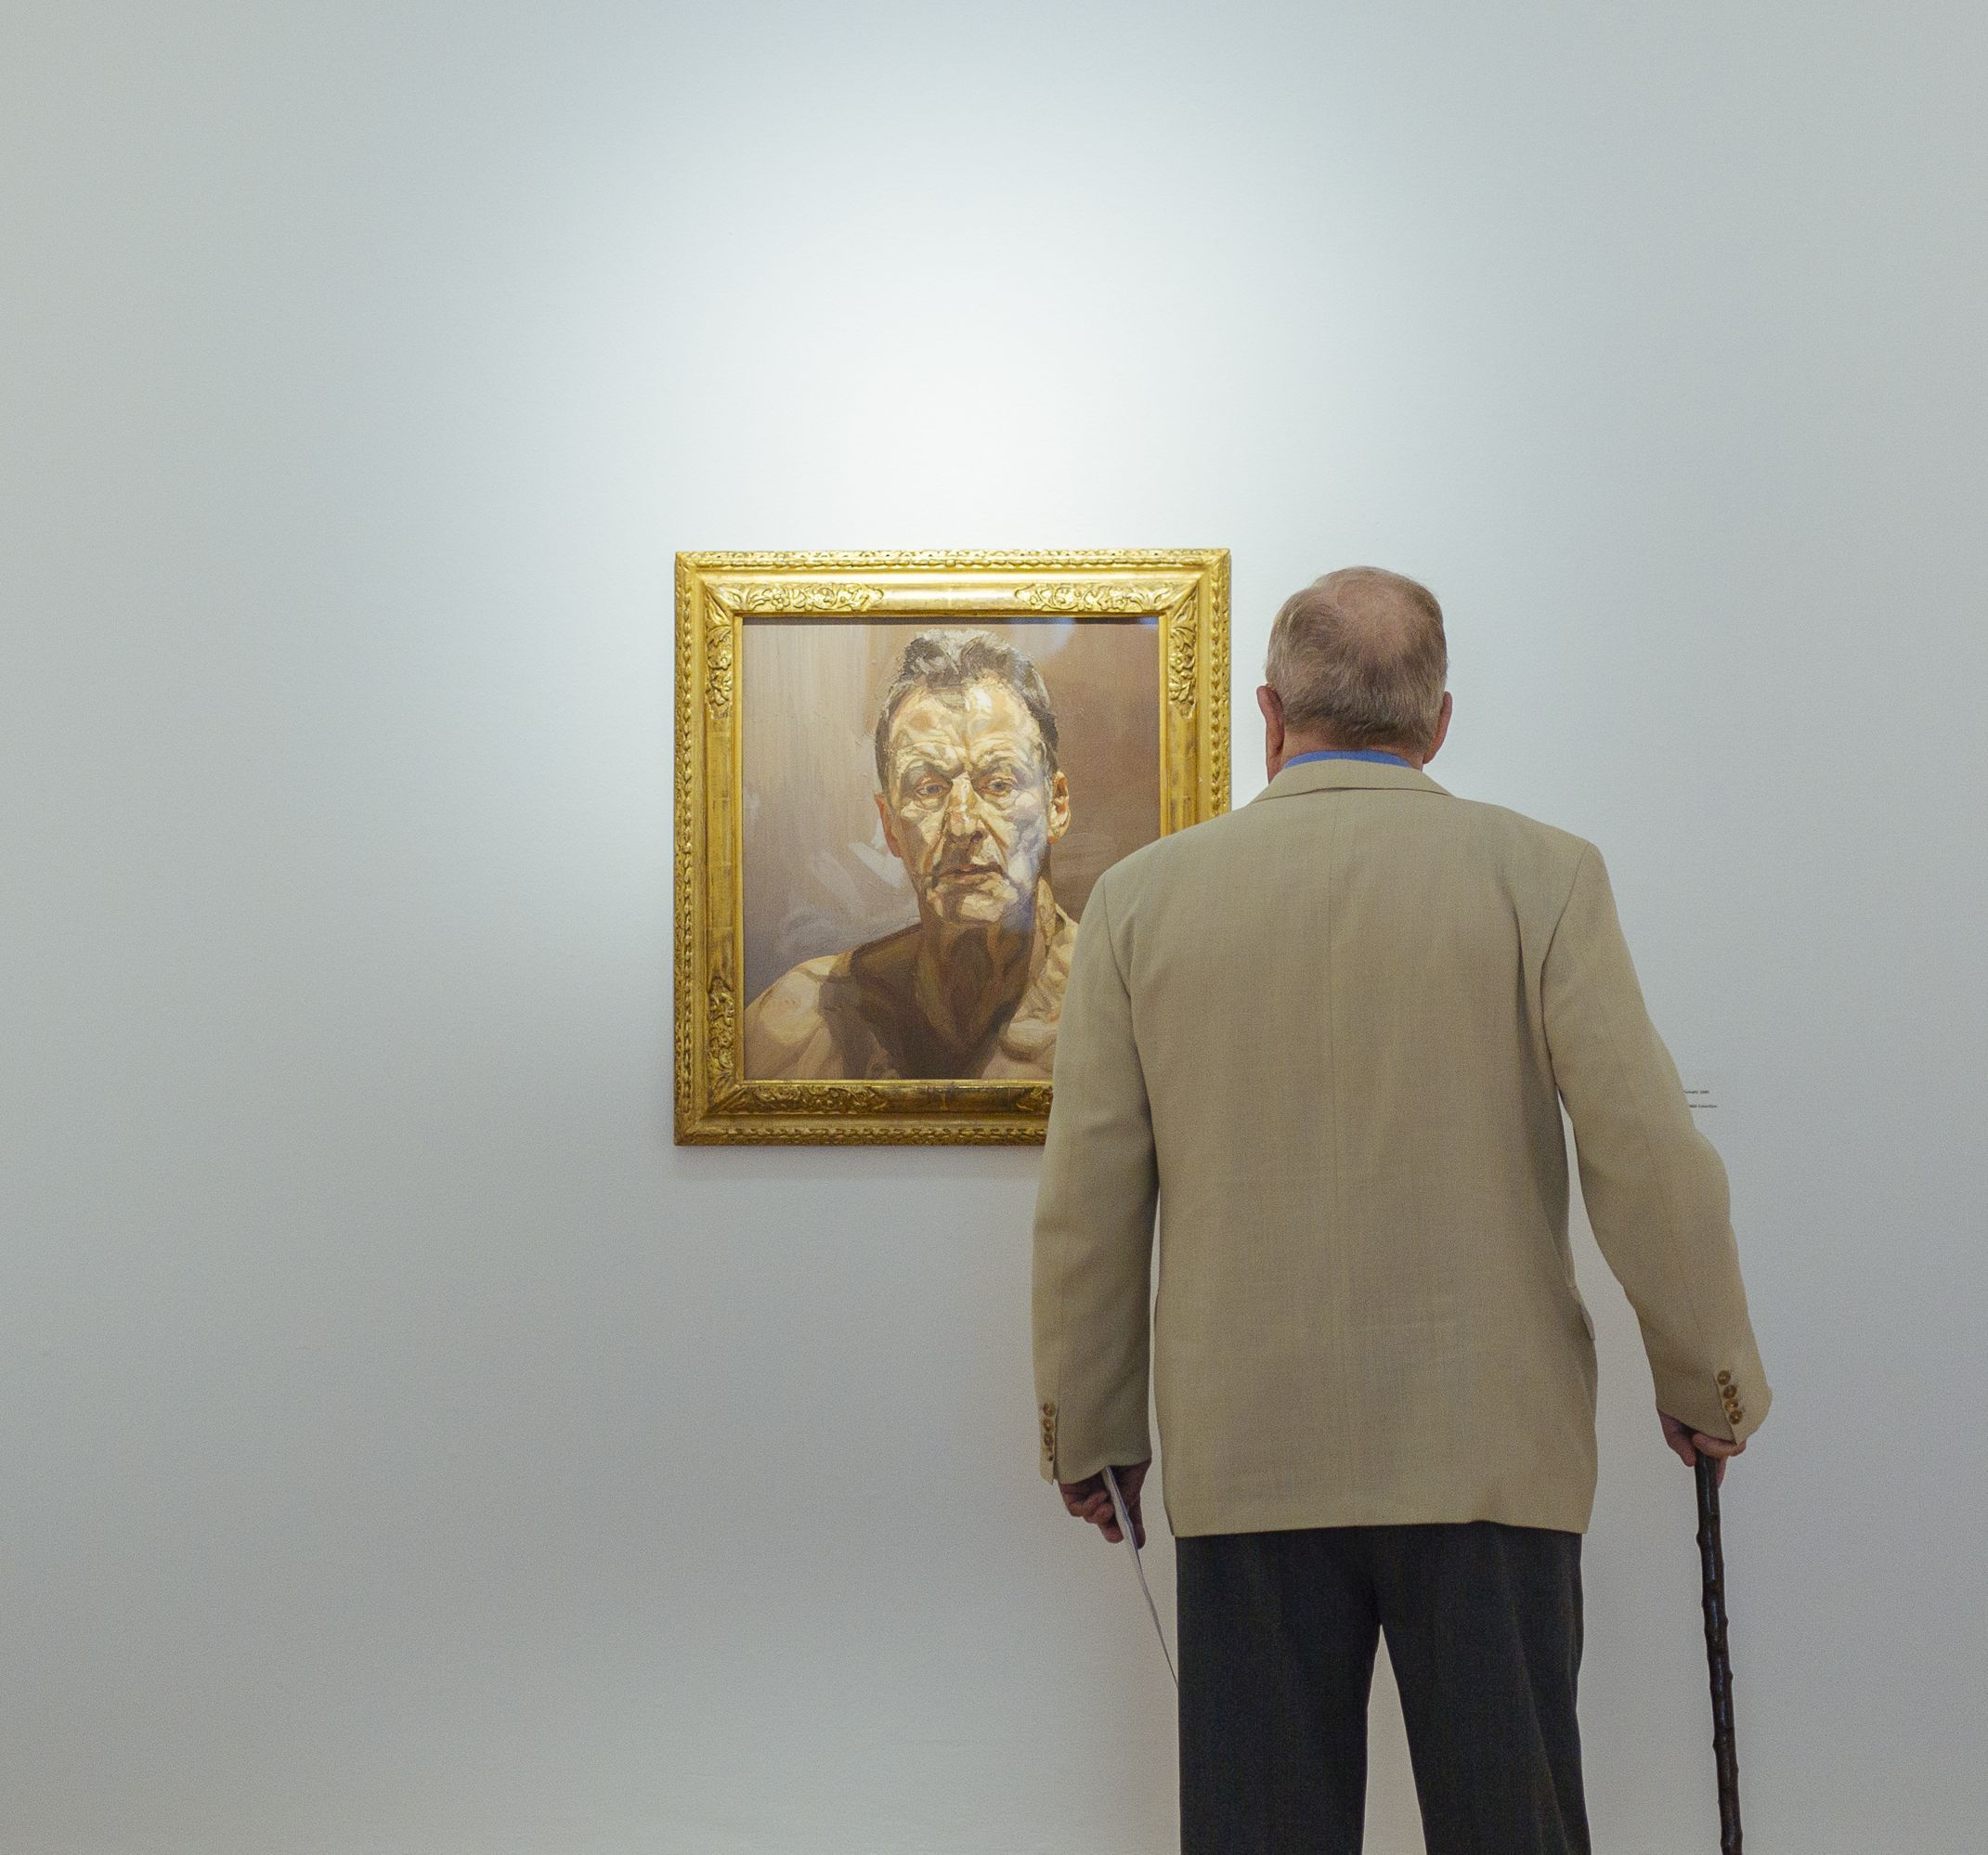 Visitor viewing the work by Lucian Freud, Reflection (Self-Portrait), 1985, Oil on canvas, 55.9 x 53.3cm, Private Collection, IMMA Collection: Freud Project. © The Lucian Freud Archive / Bridgeman Images. Photo Kyle Tunney